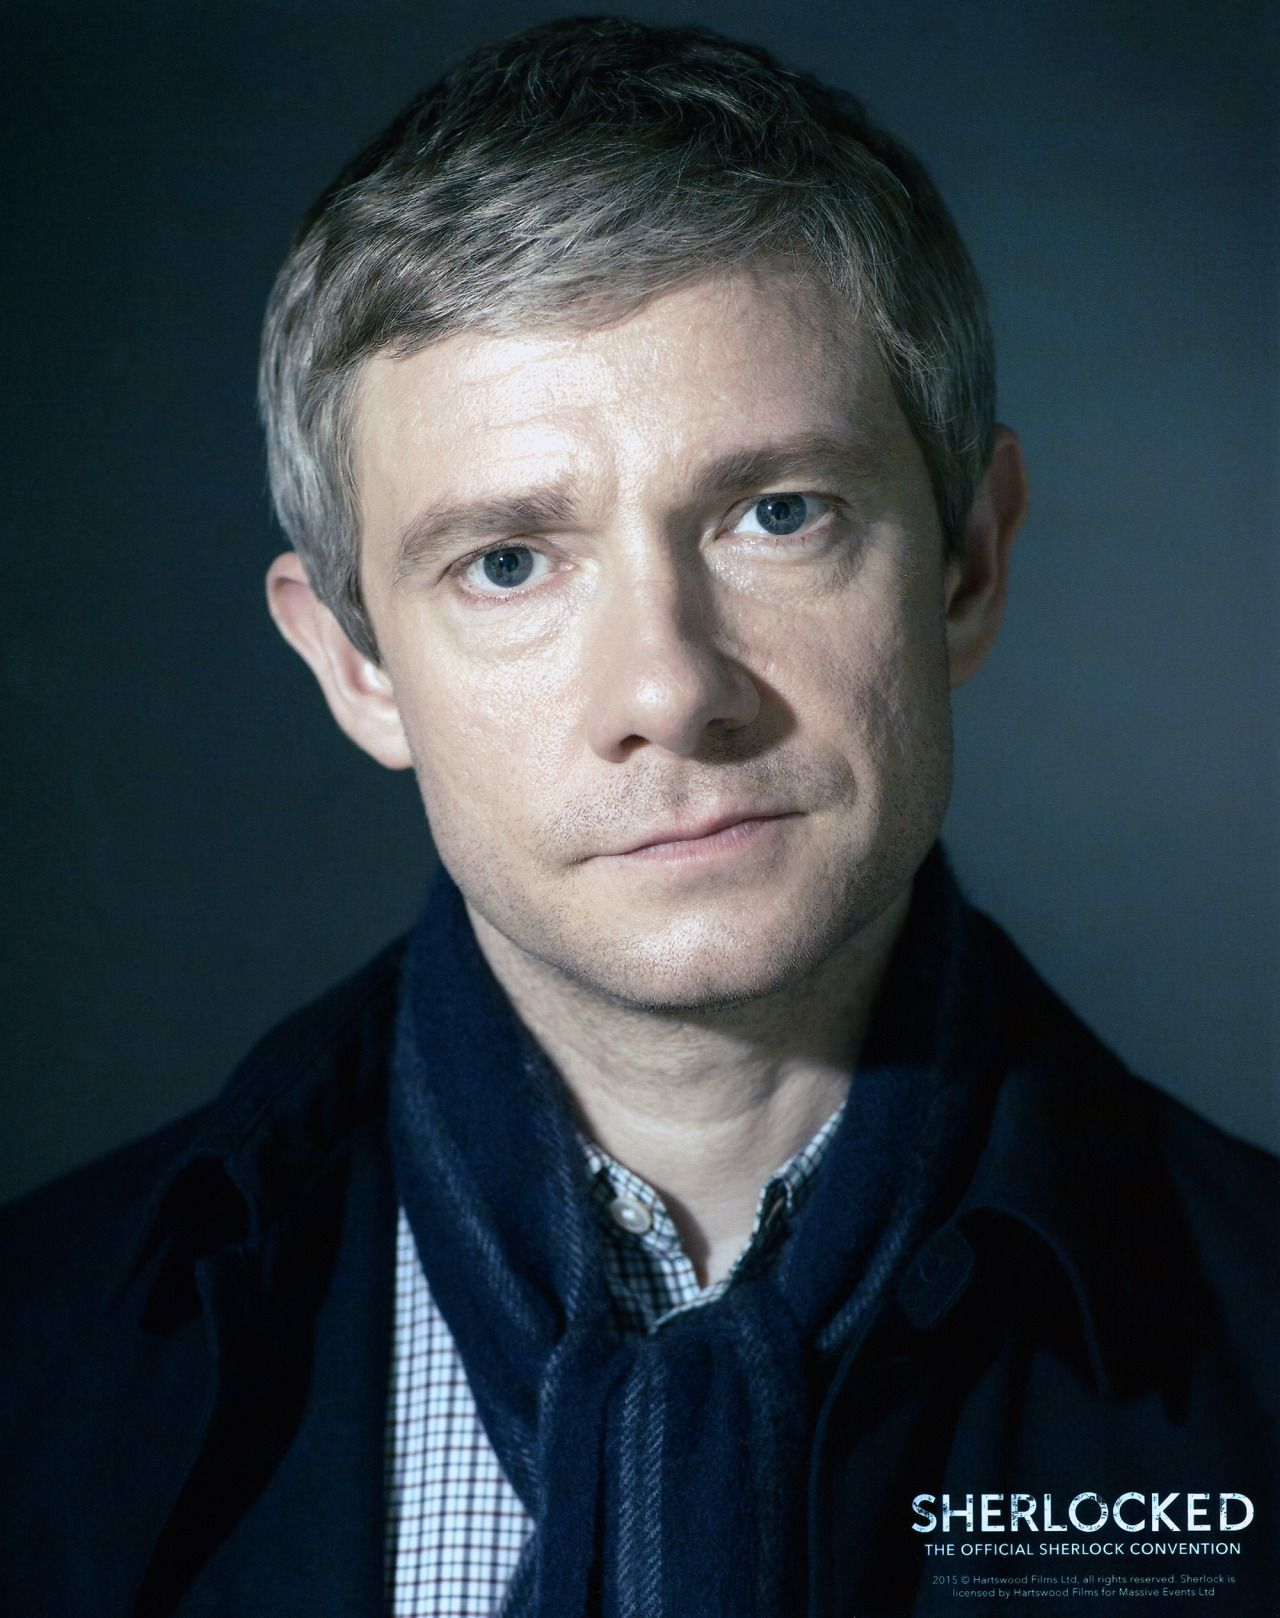 02   Lovely New Promo Picture Released At Sherlocked   John Watson With  Scarf  Dr Watson I Presume